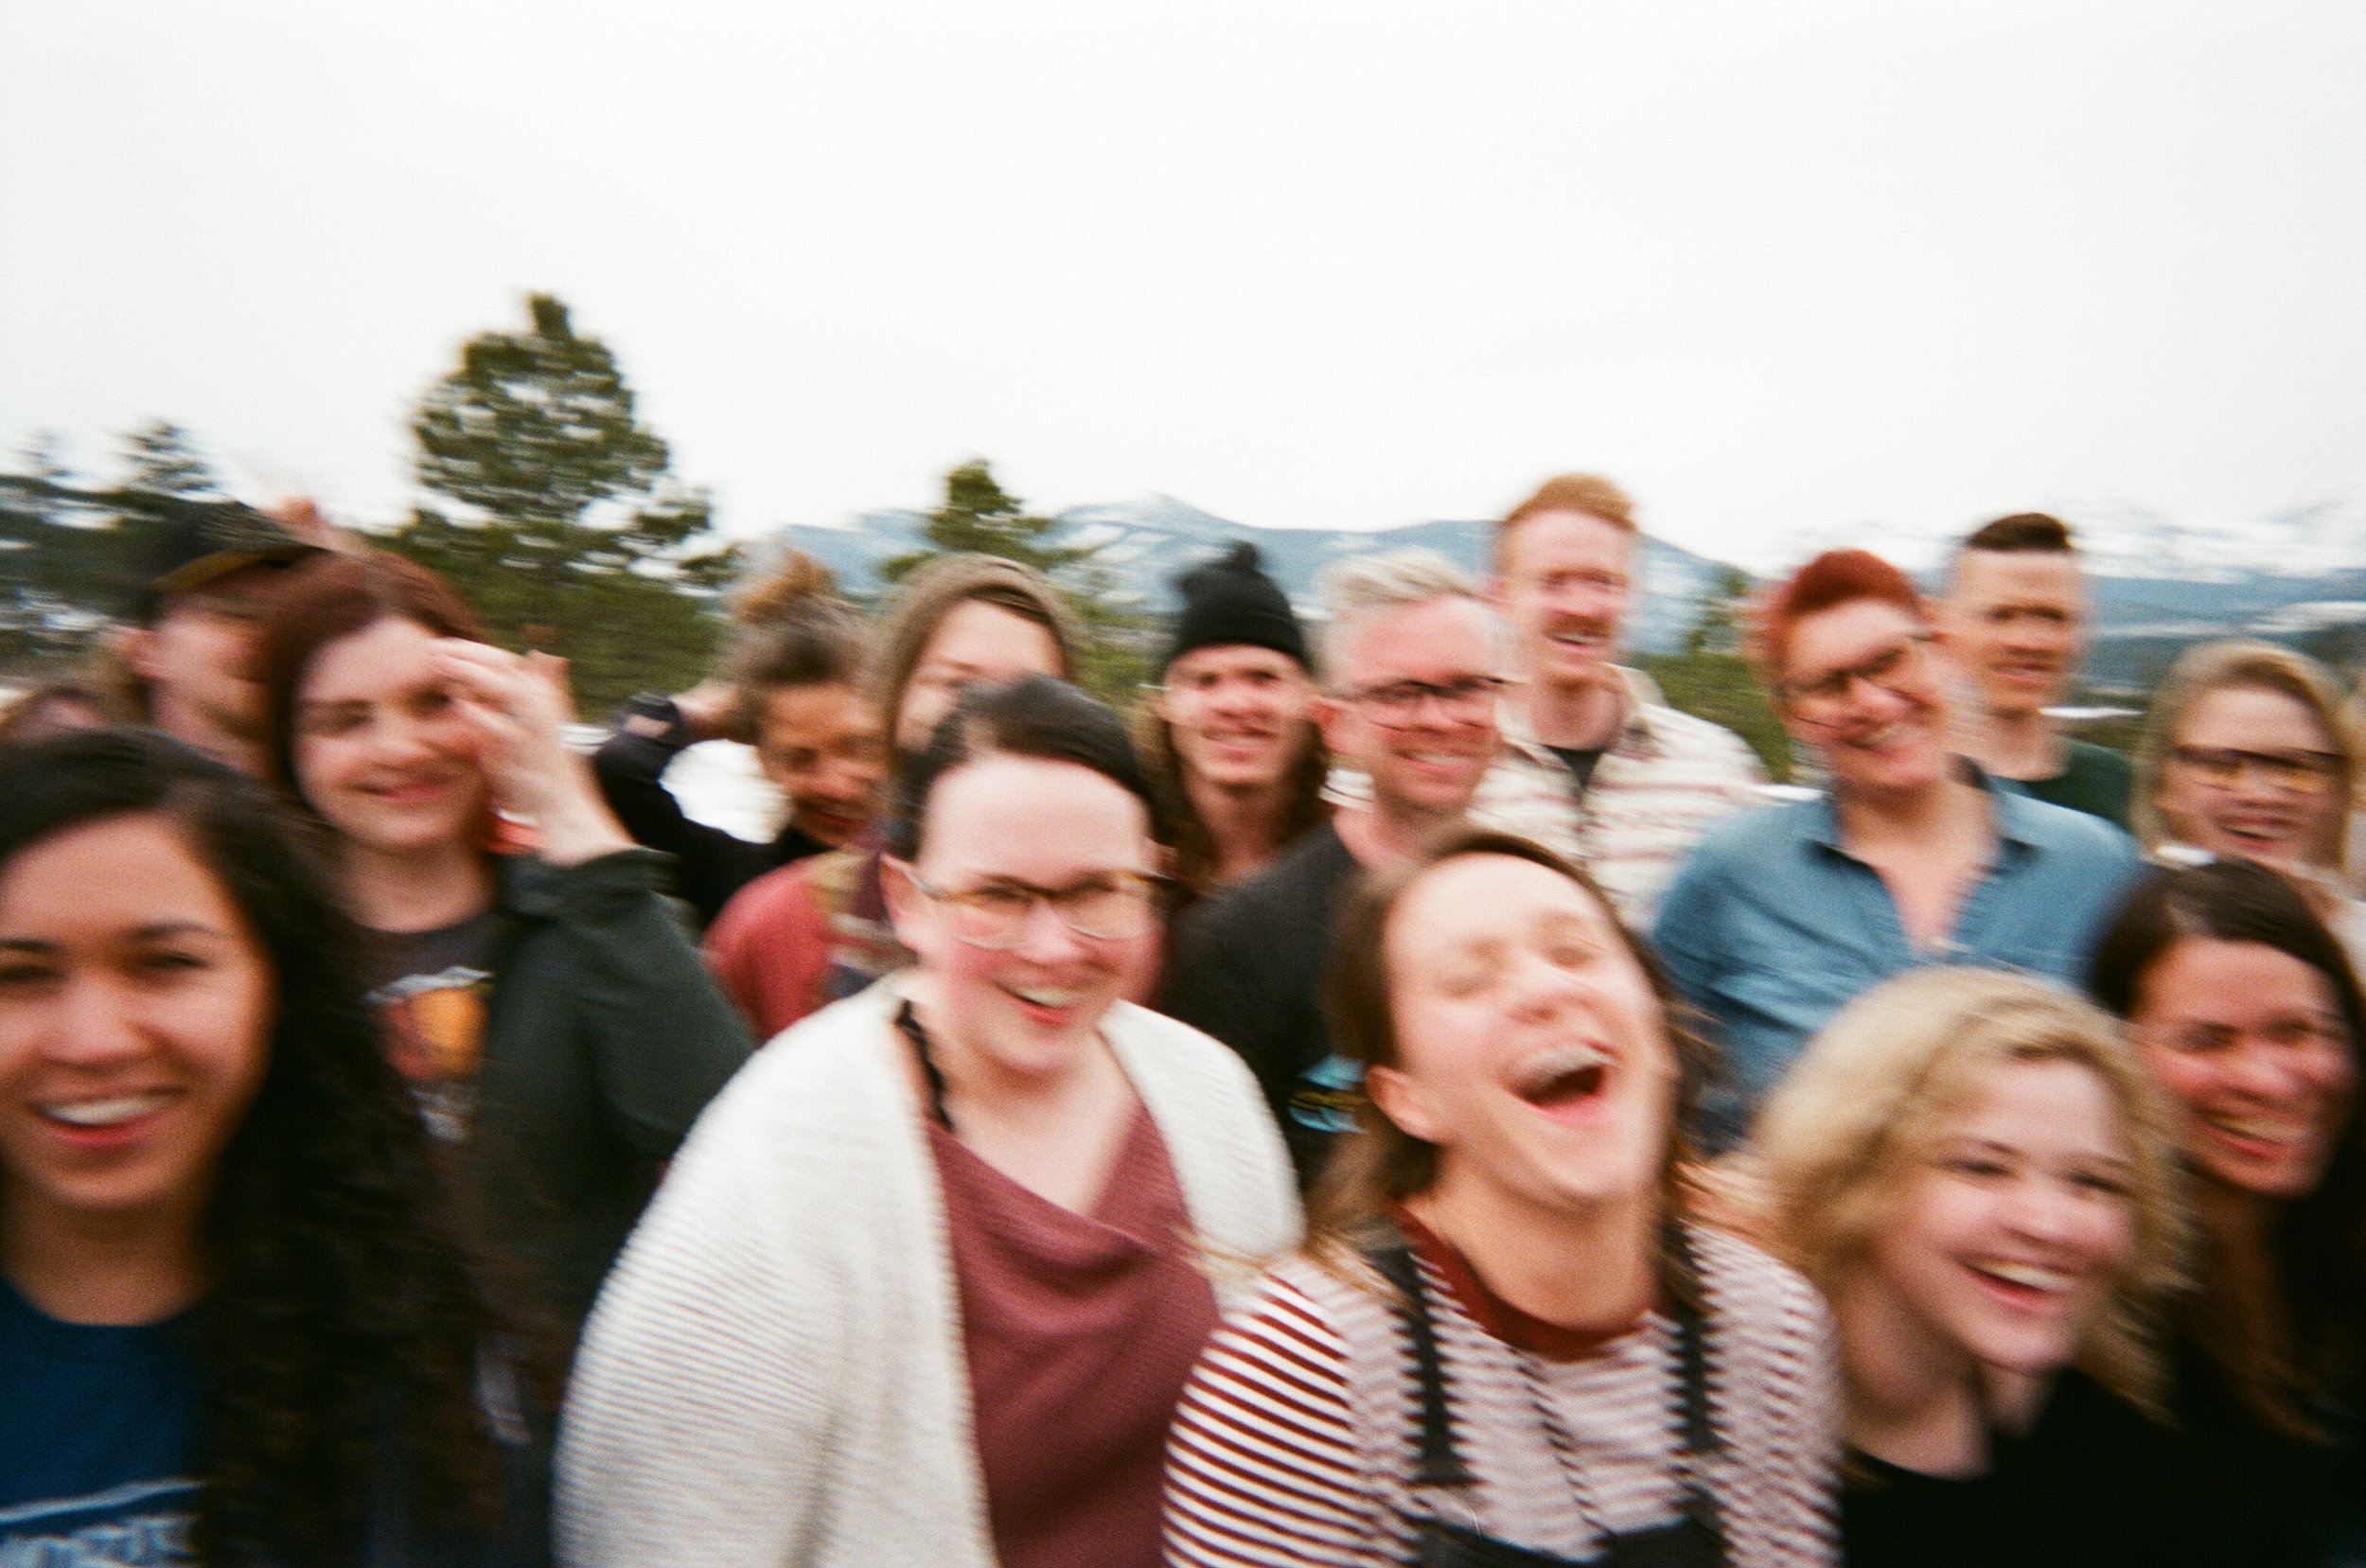 All You Witness Photography Retreat for Documentary and Photojournalism Wedding Photographers in Estes Park, Colorado